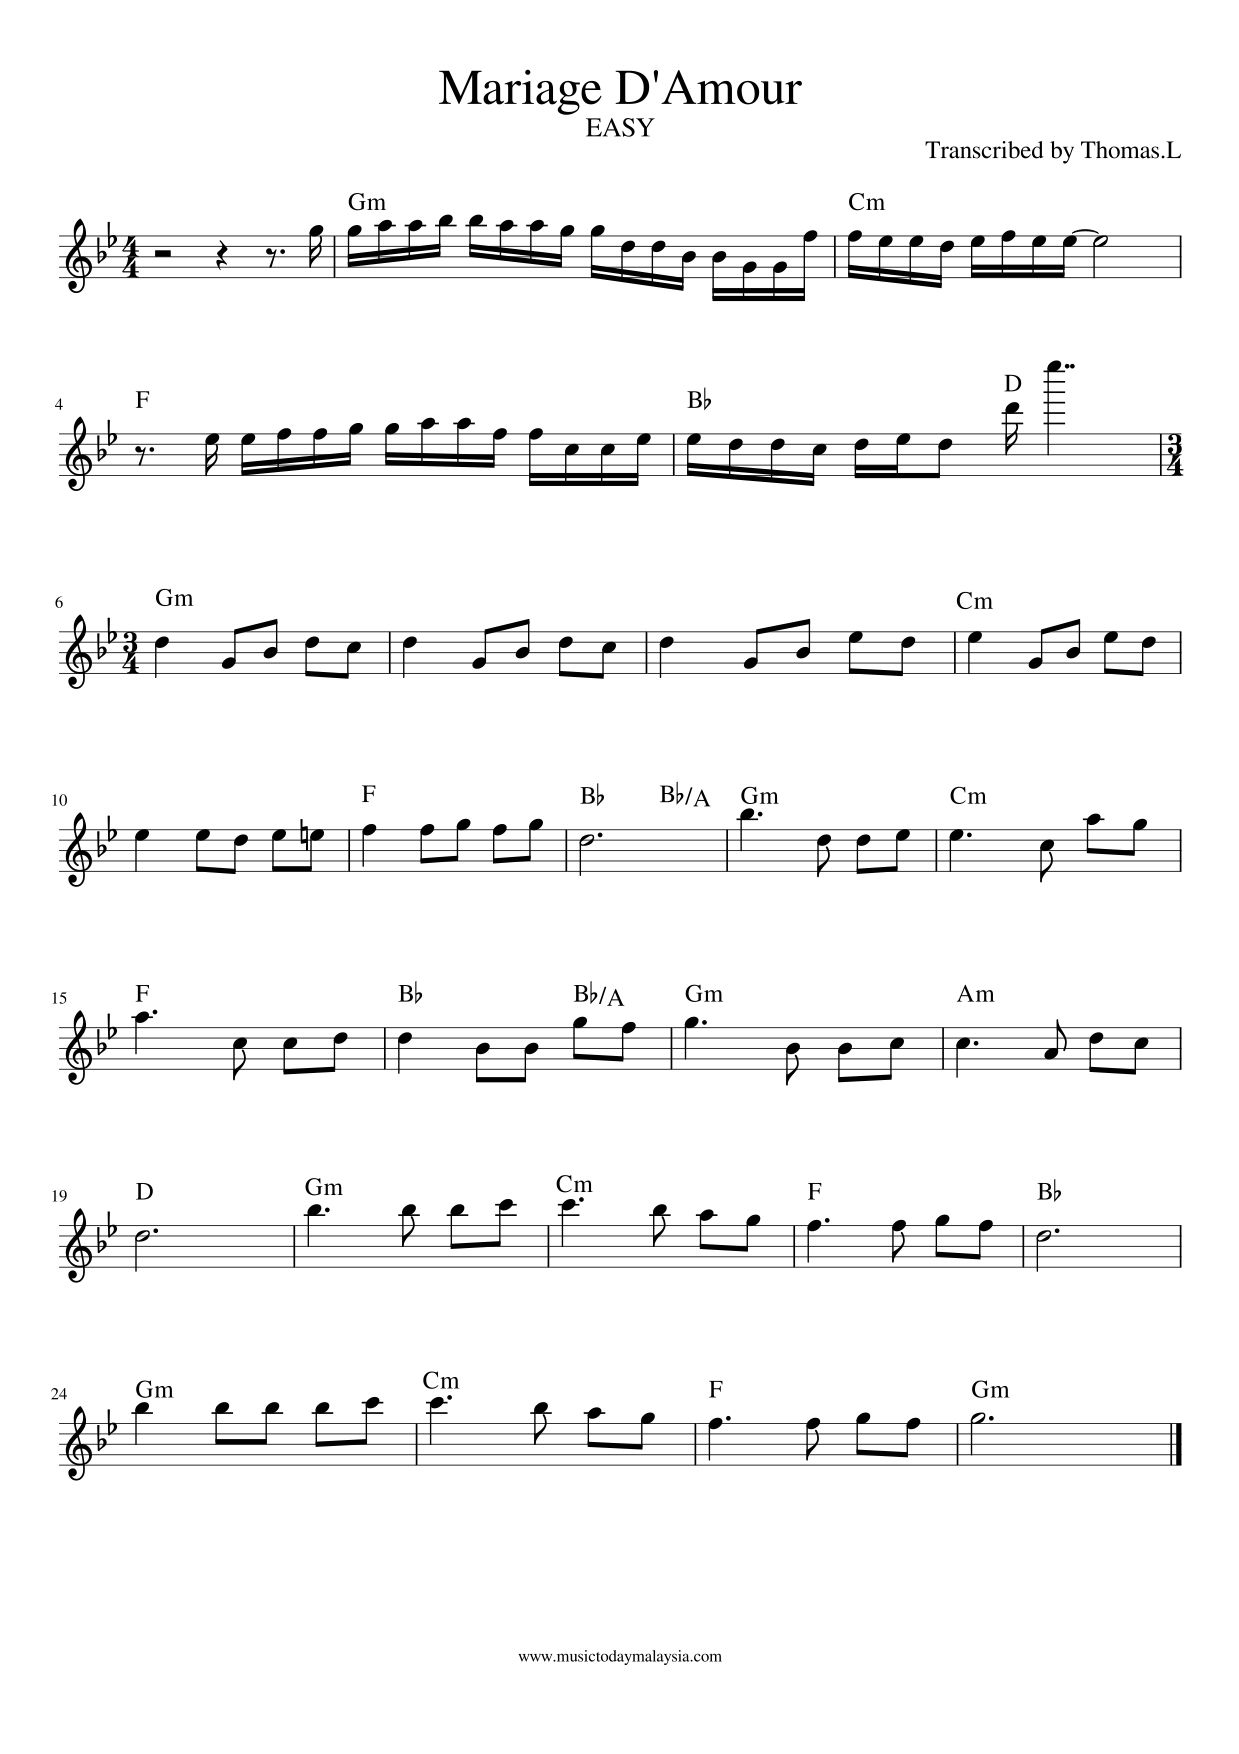 Mariage D Amour Free Piano Sheet Top 10 Classical Piano Song